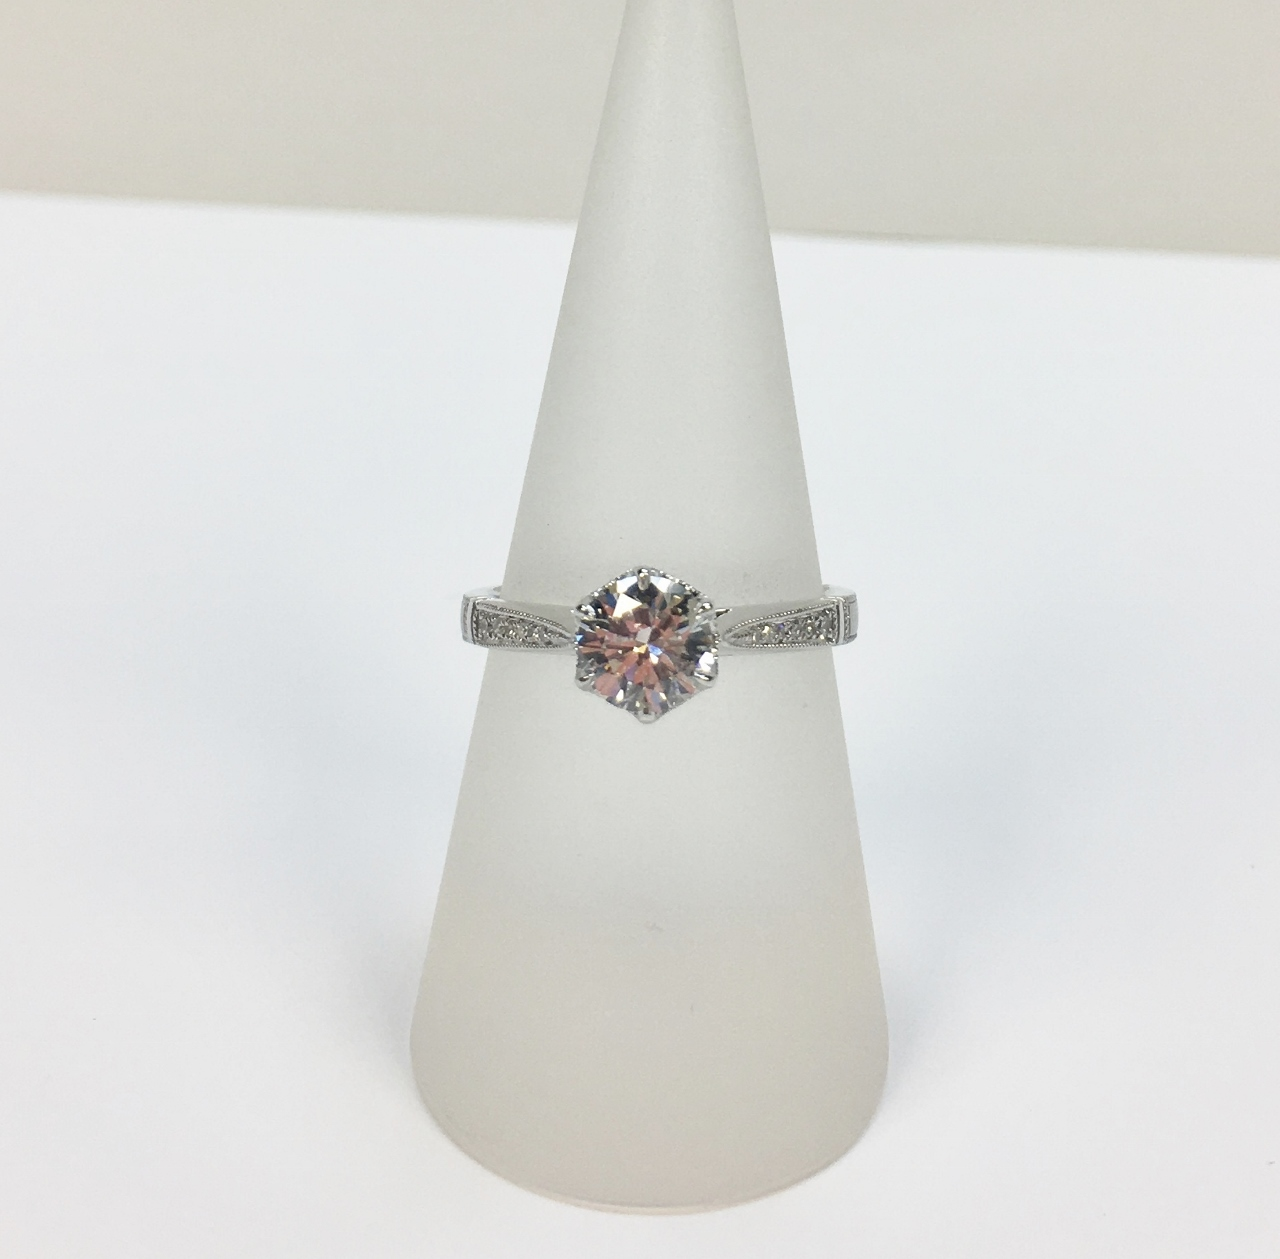 0.85 Carats Solitaire Diamond Ring